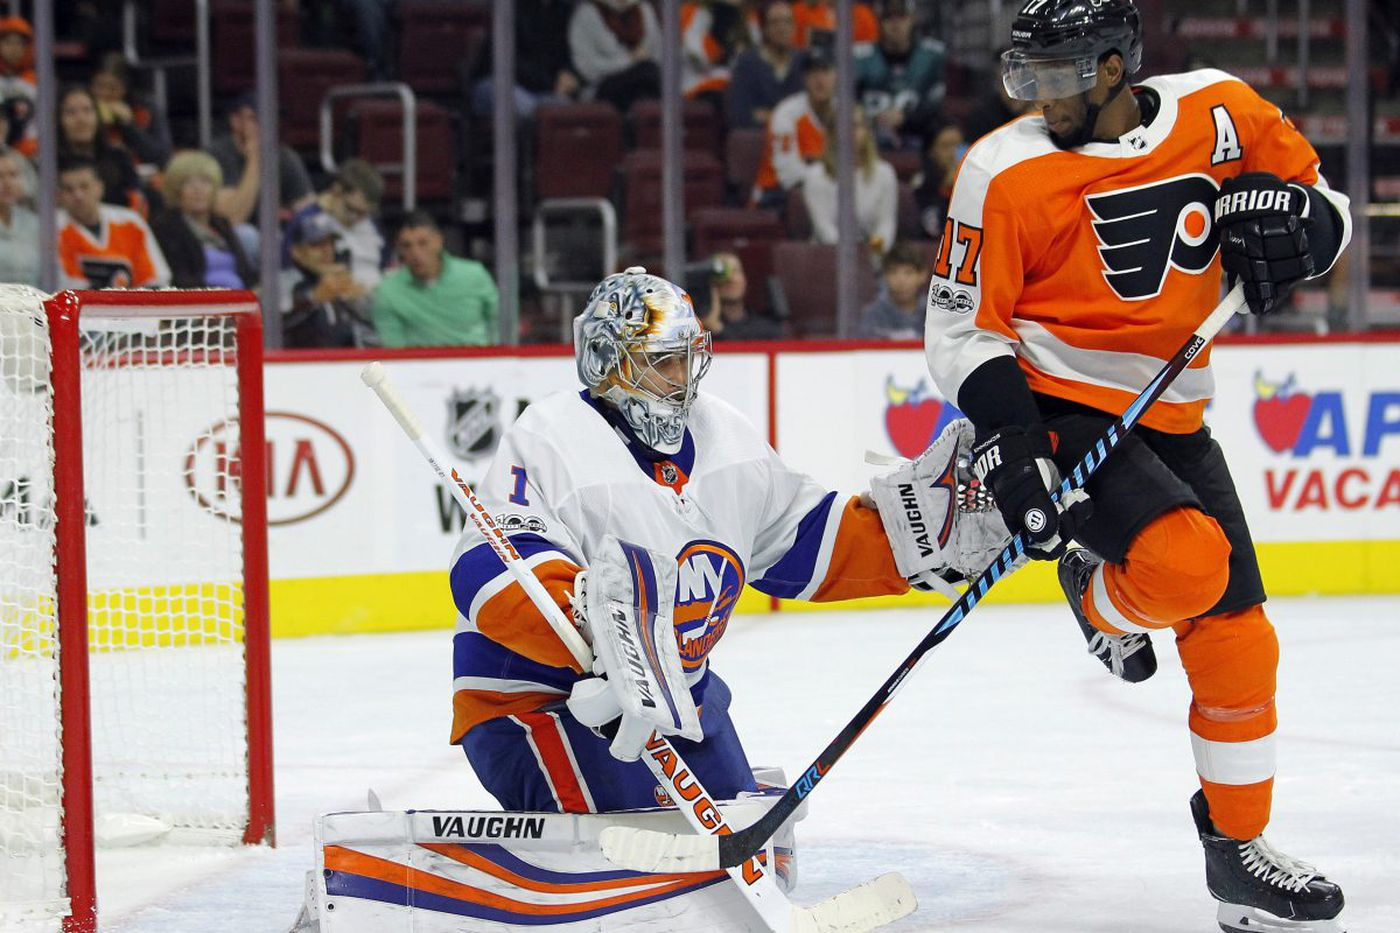 Flyers end preseason with 5-2 loss to Islanders